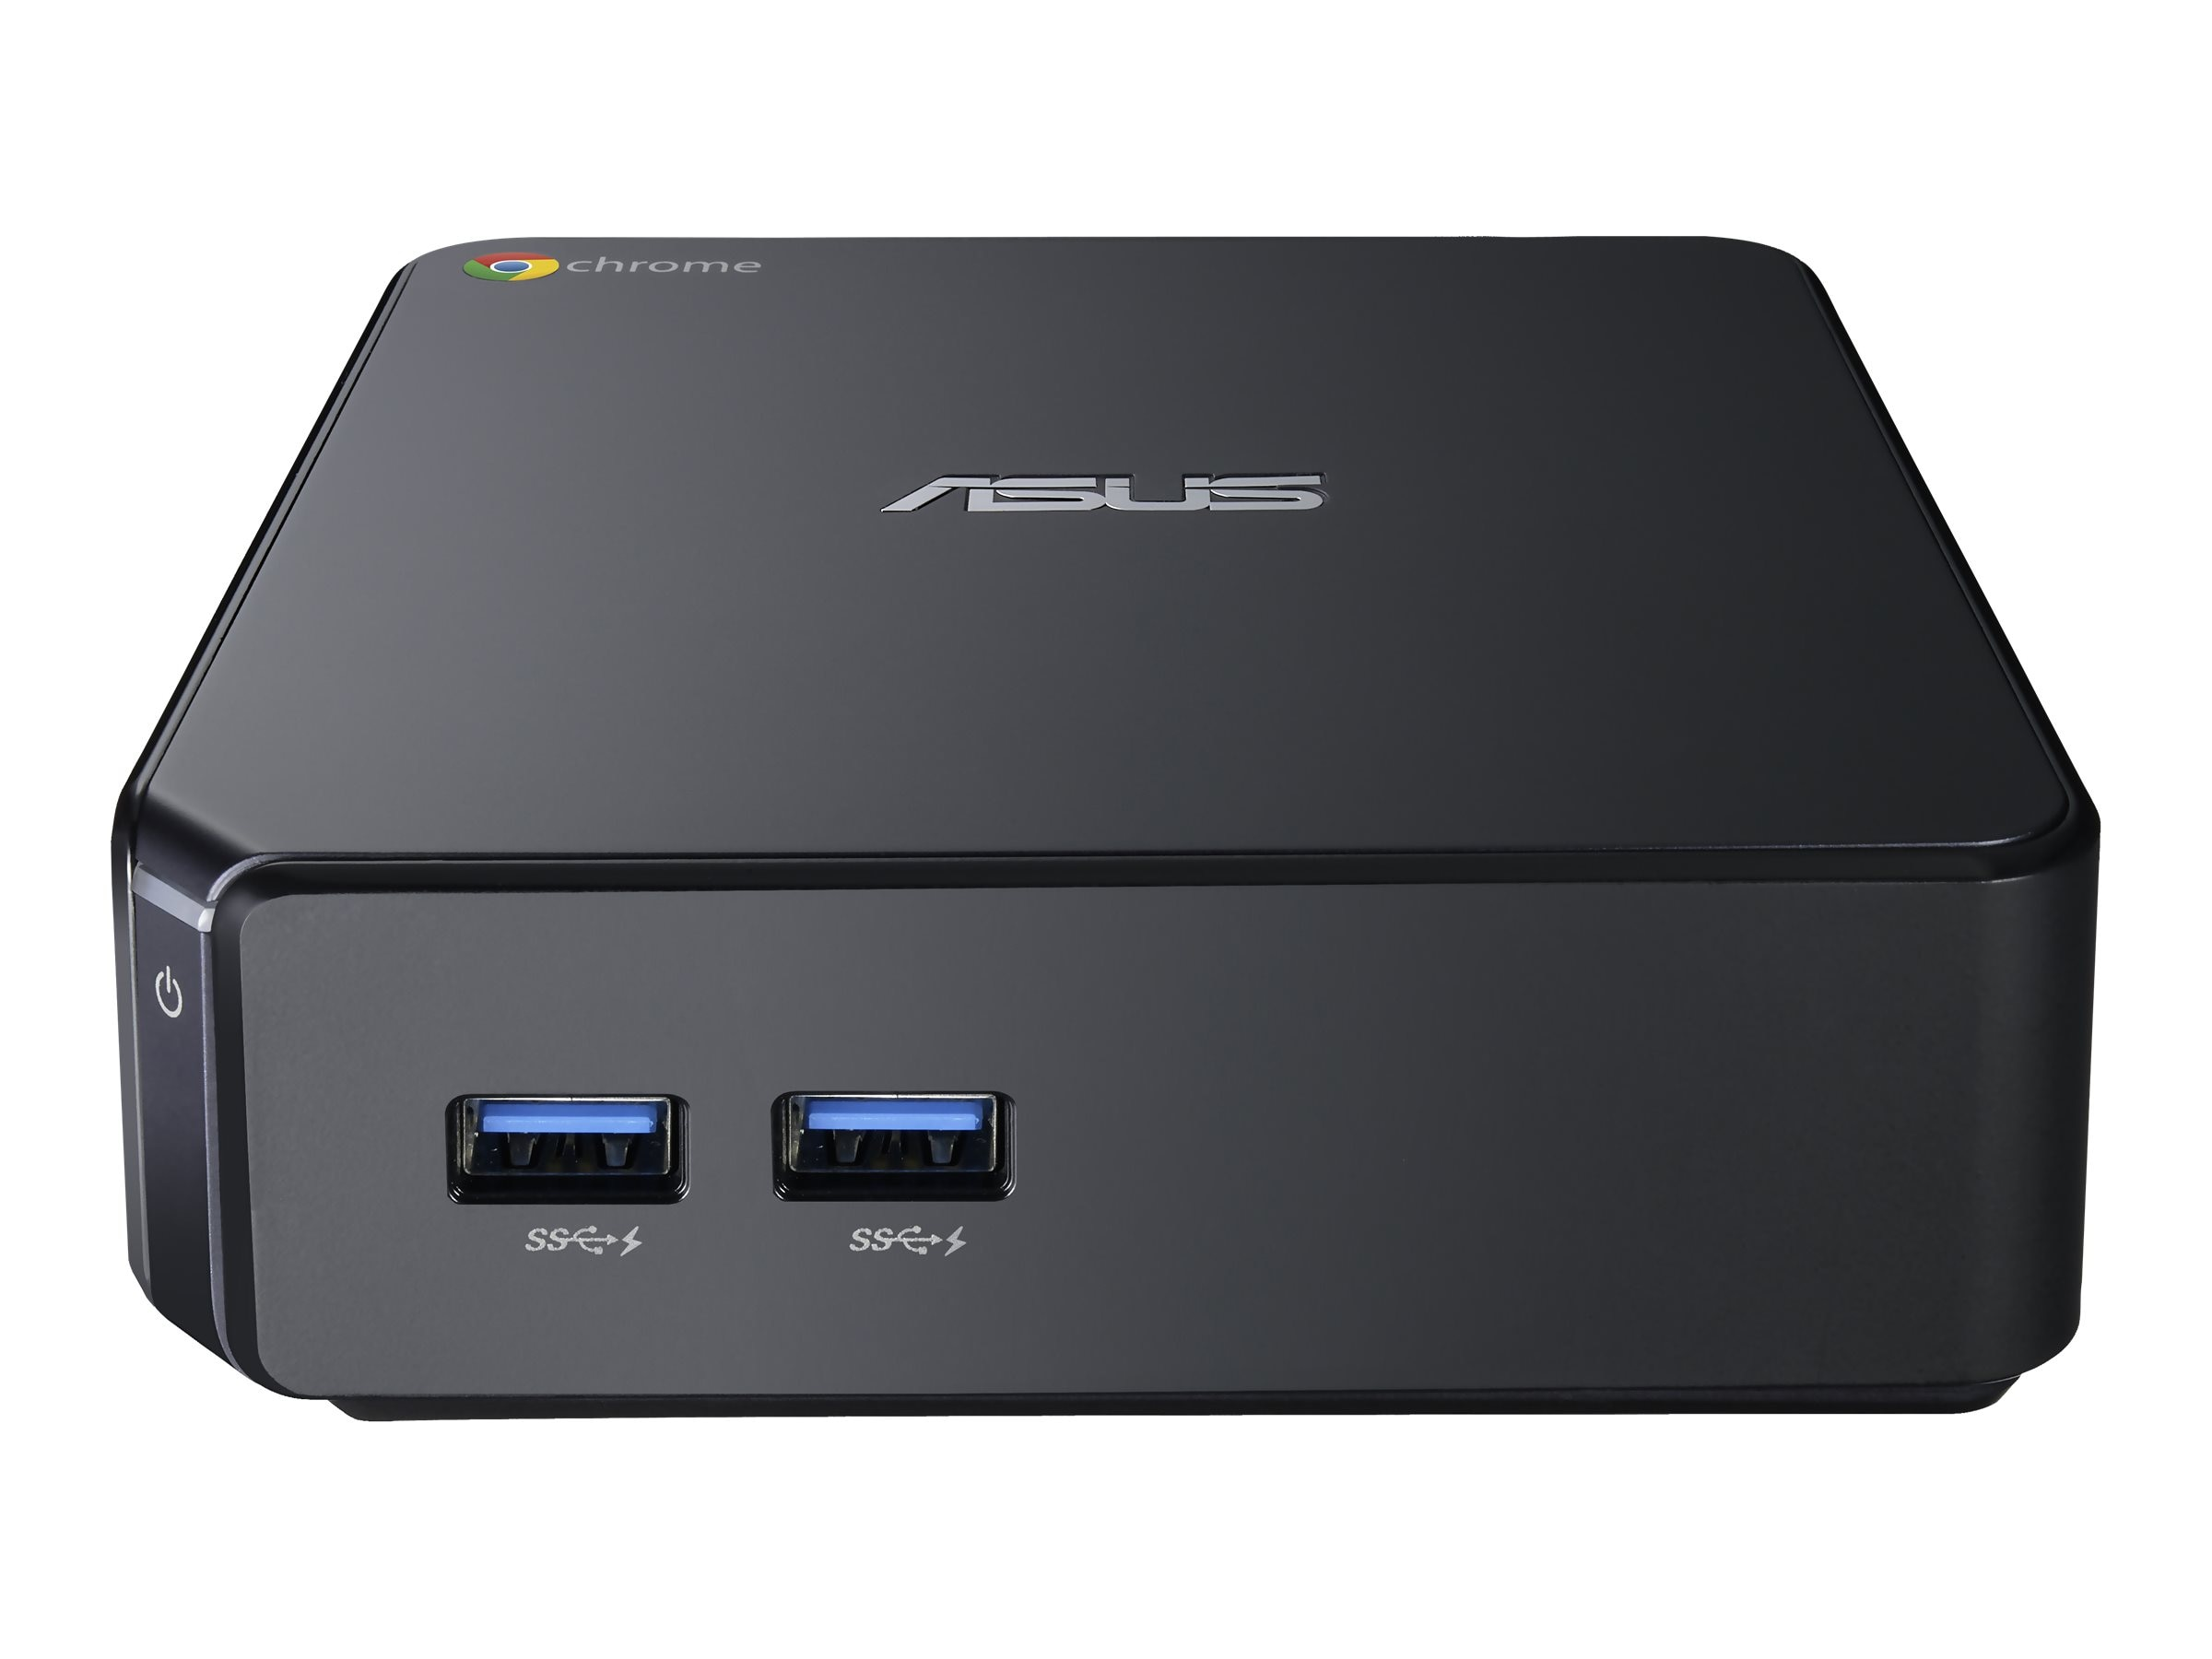 Asus Chromebox M106U Celeron 2955U 1.4GHz 2GB 16GB SSD WL ChromeOS, CHROMEBOX-M106U, 17849094, Desktops